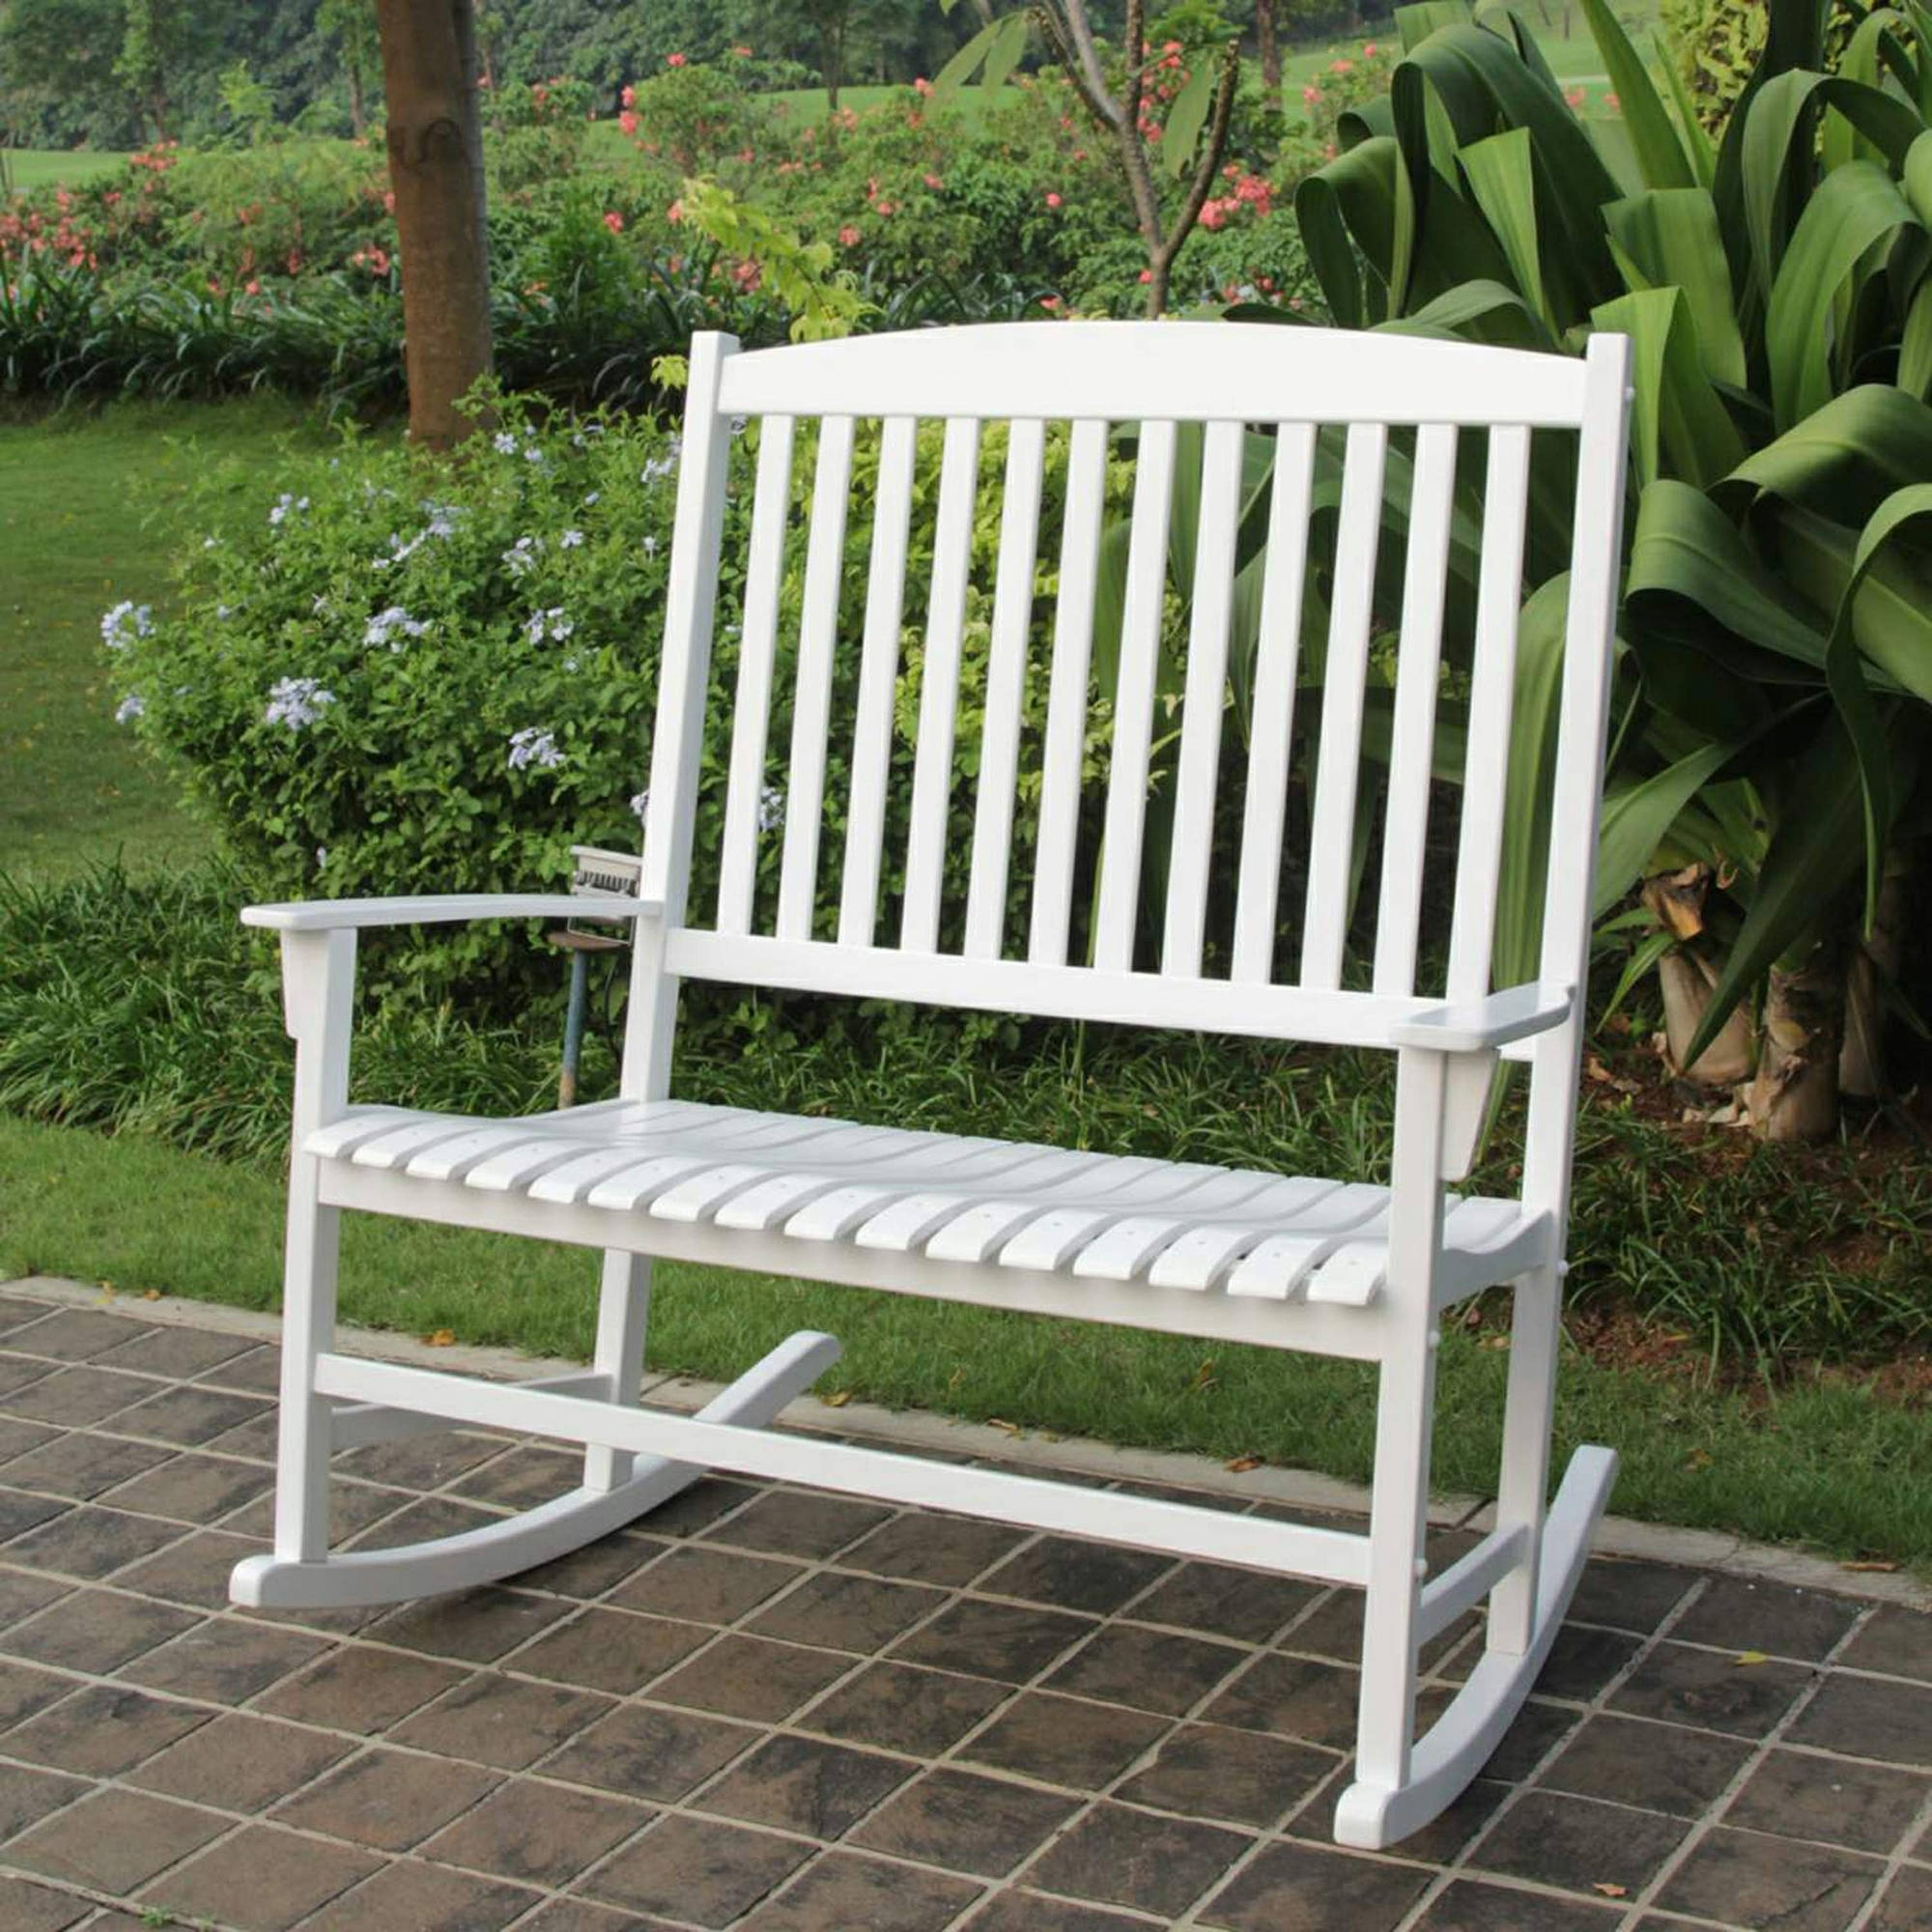 Inspiration about Mainstays Outdoor 2 Person Double Rocking Chair – Walmart For Rocking Chairs For Garden (#9 of 15)